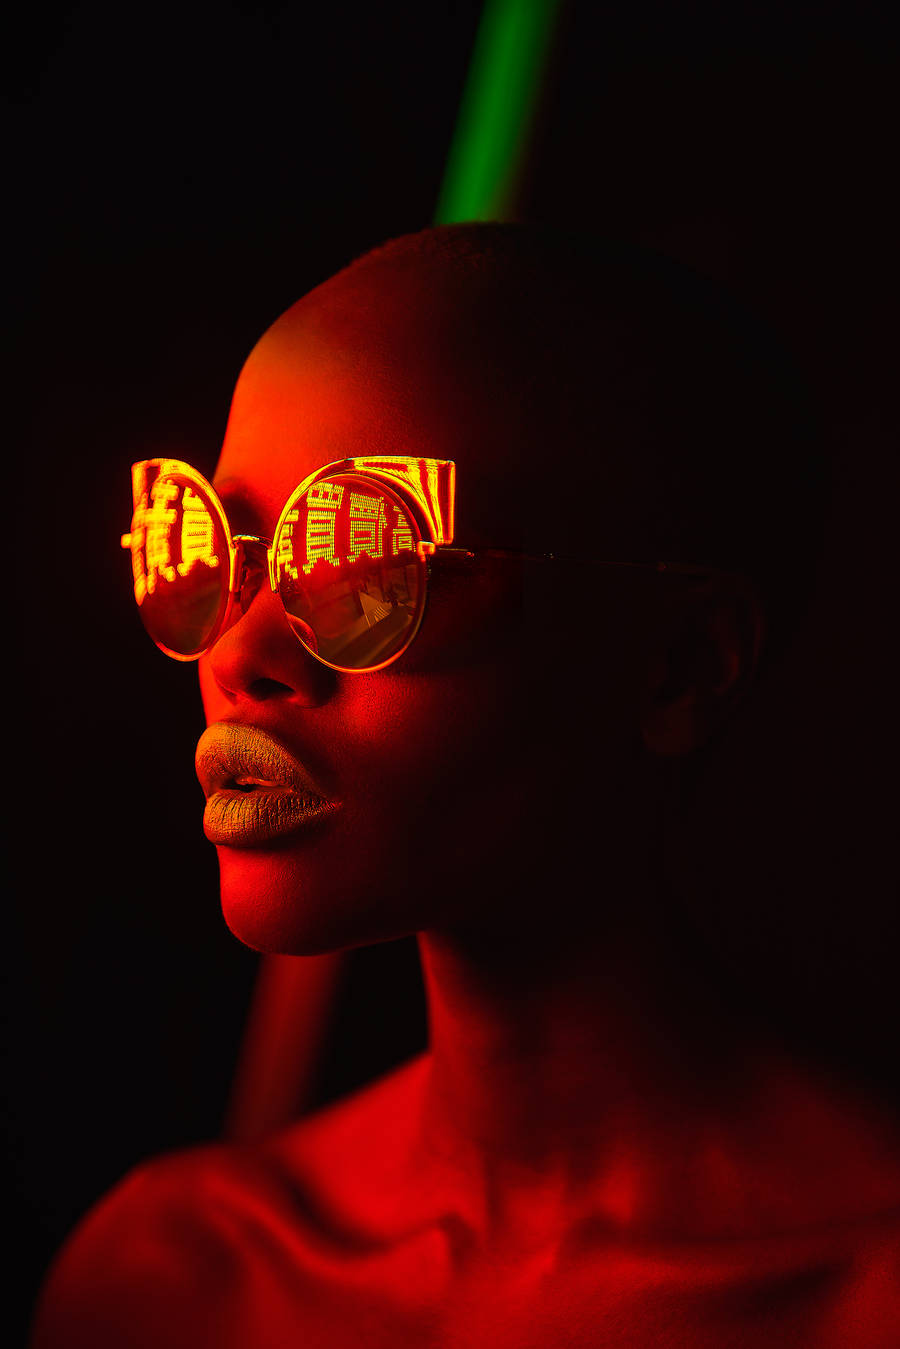 Pop Portraits with Neon Light Reflected in Sunglasses